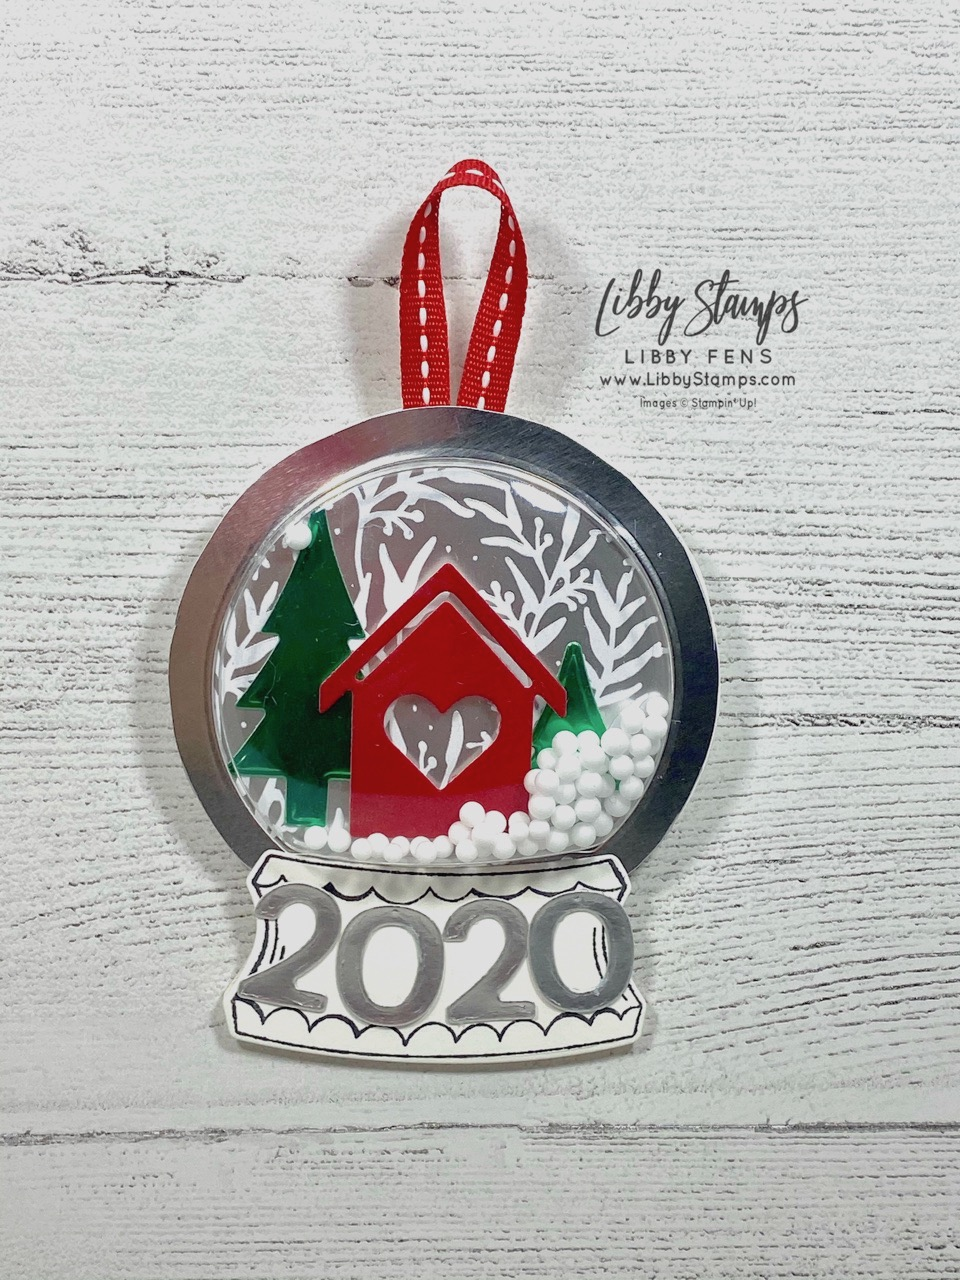 libbystamps, Stampin' Up!, Zoo Globe, Snow Globe Scenes Dies, Playful Alphabet Dies, Home Together Dies, Feels Like Frost DSP, Snow Globe Shaker Domes, Playful Pets Trim Combo, Ink Stamp Share Blog Hop